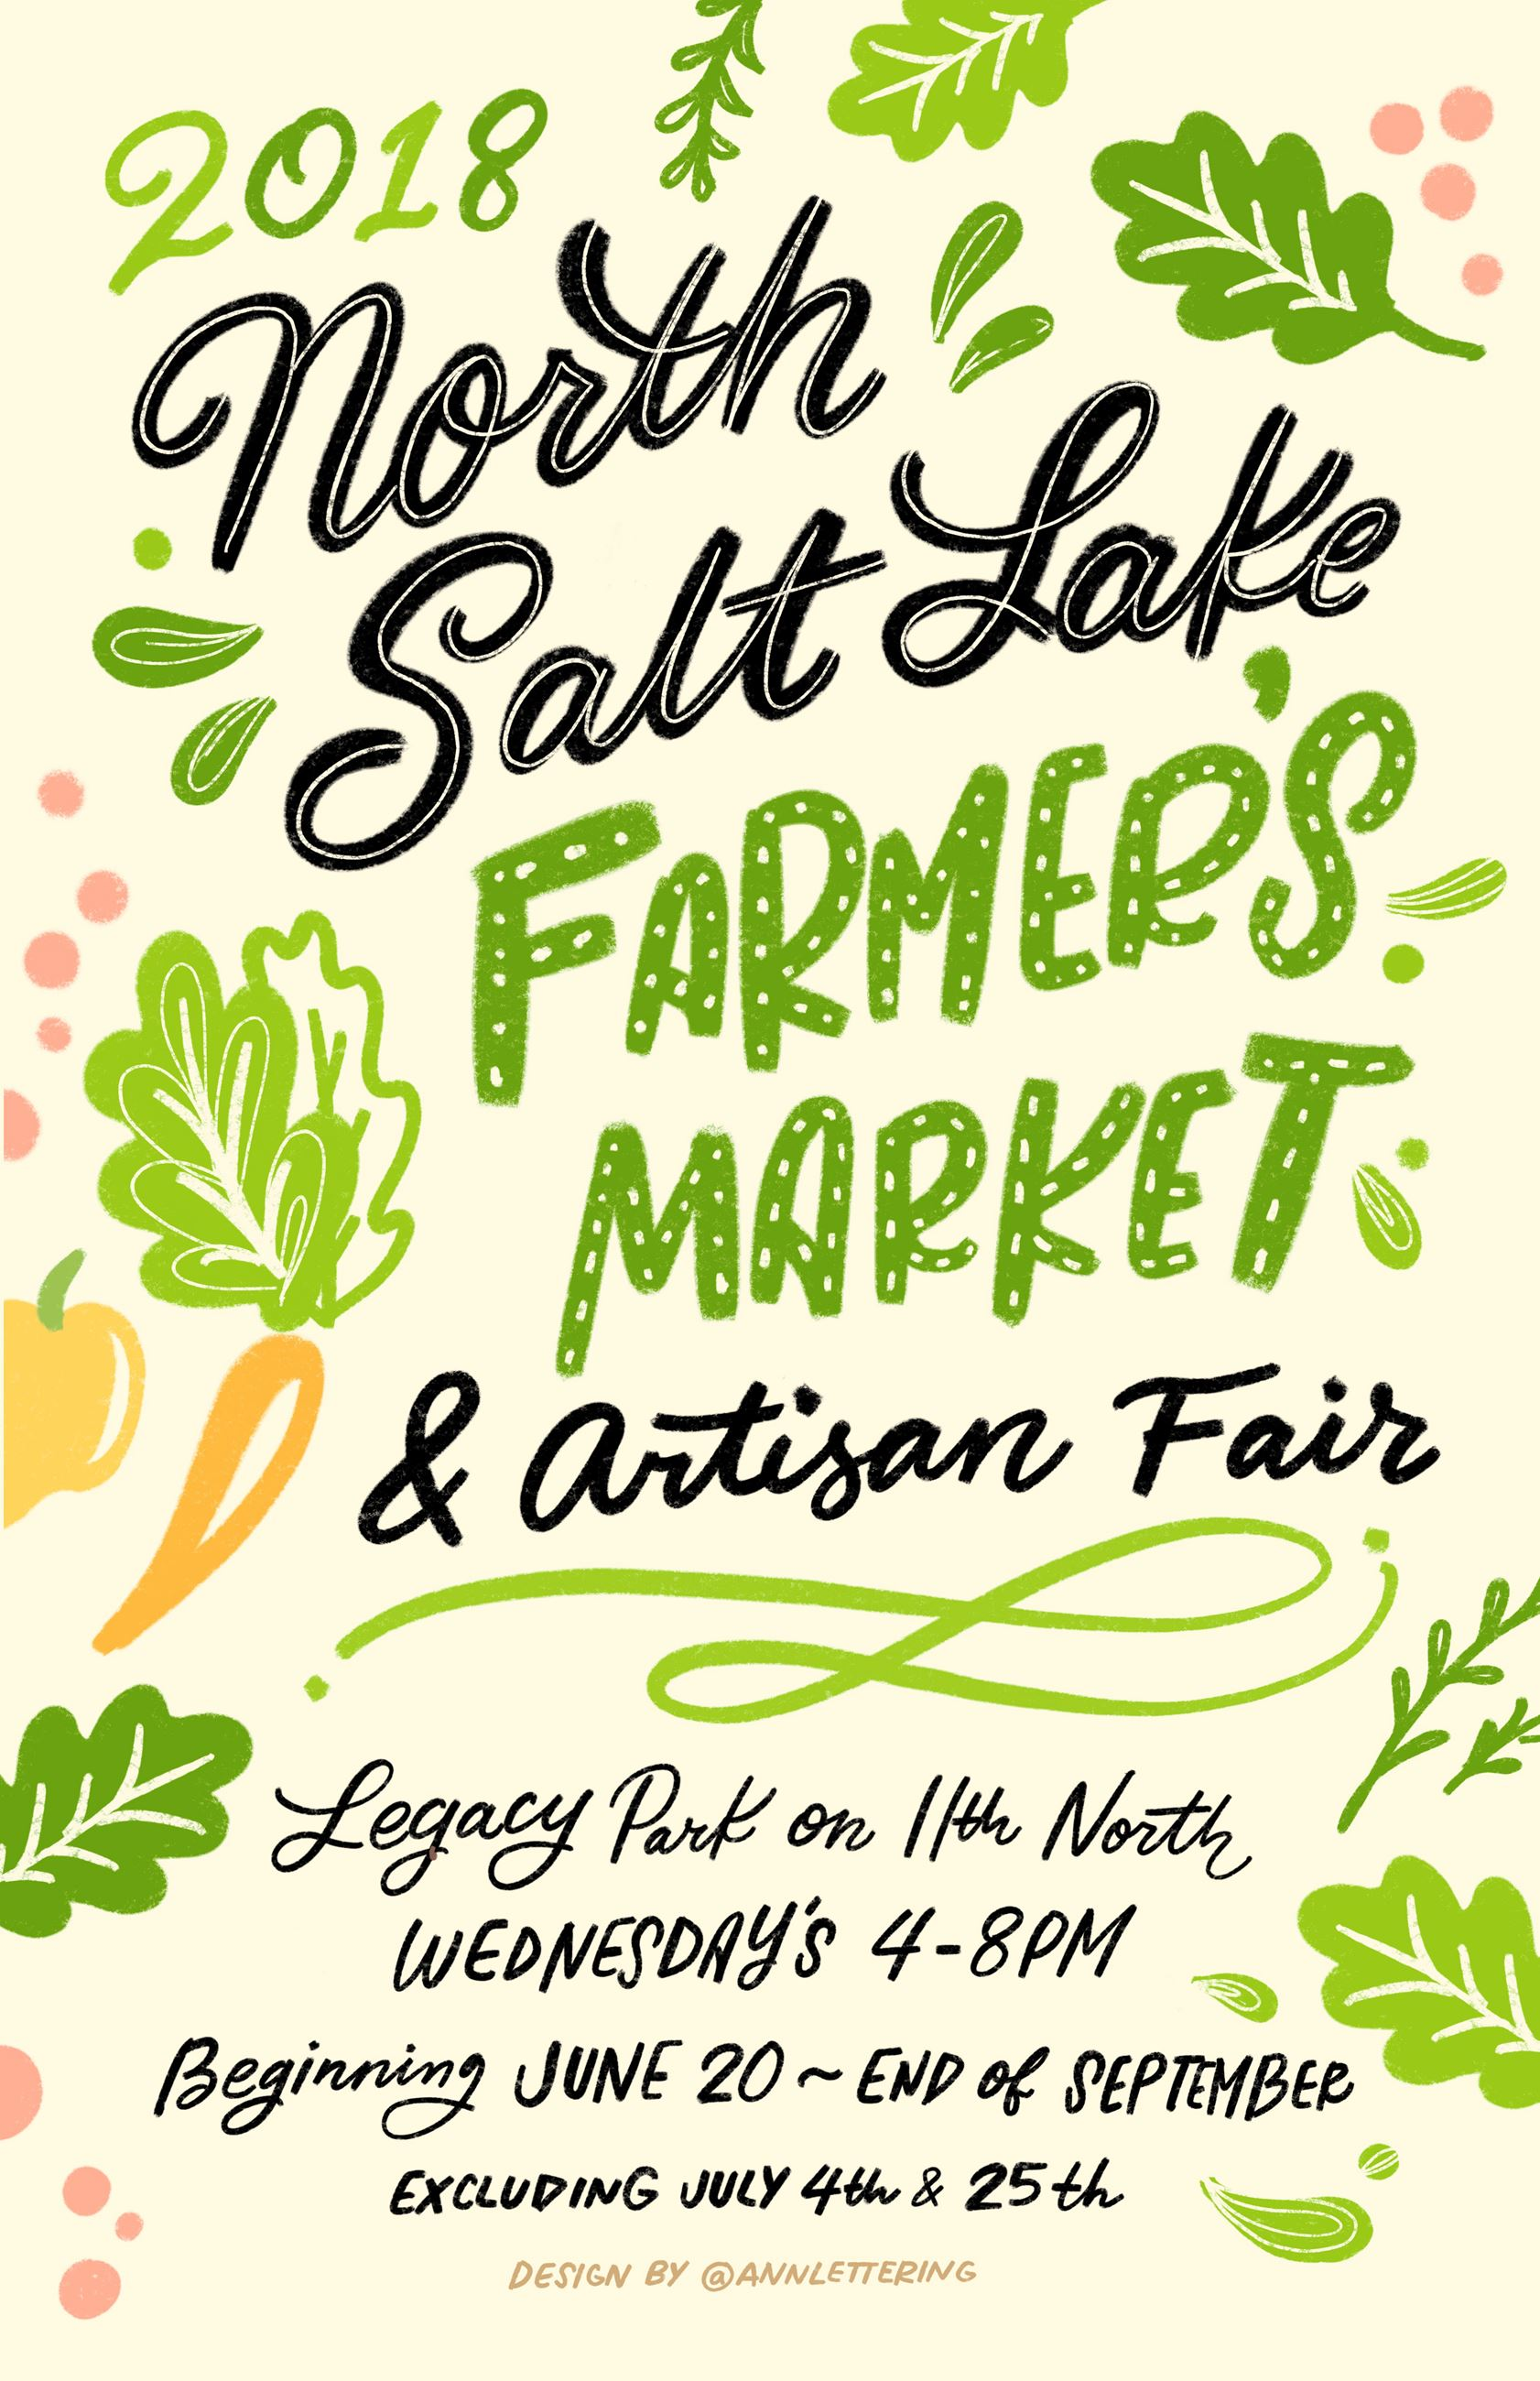 Farmers Market 2018 Revised NSL Flyer 11x17 Final